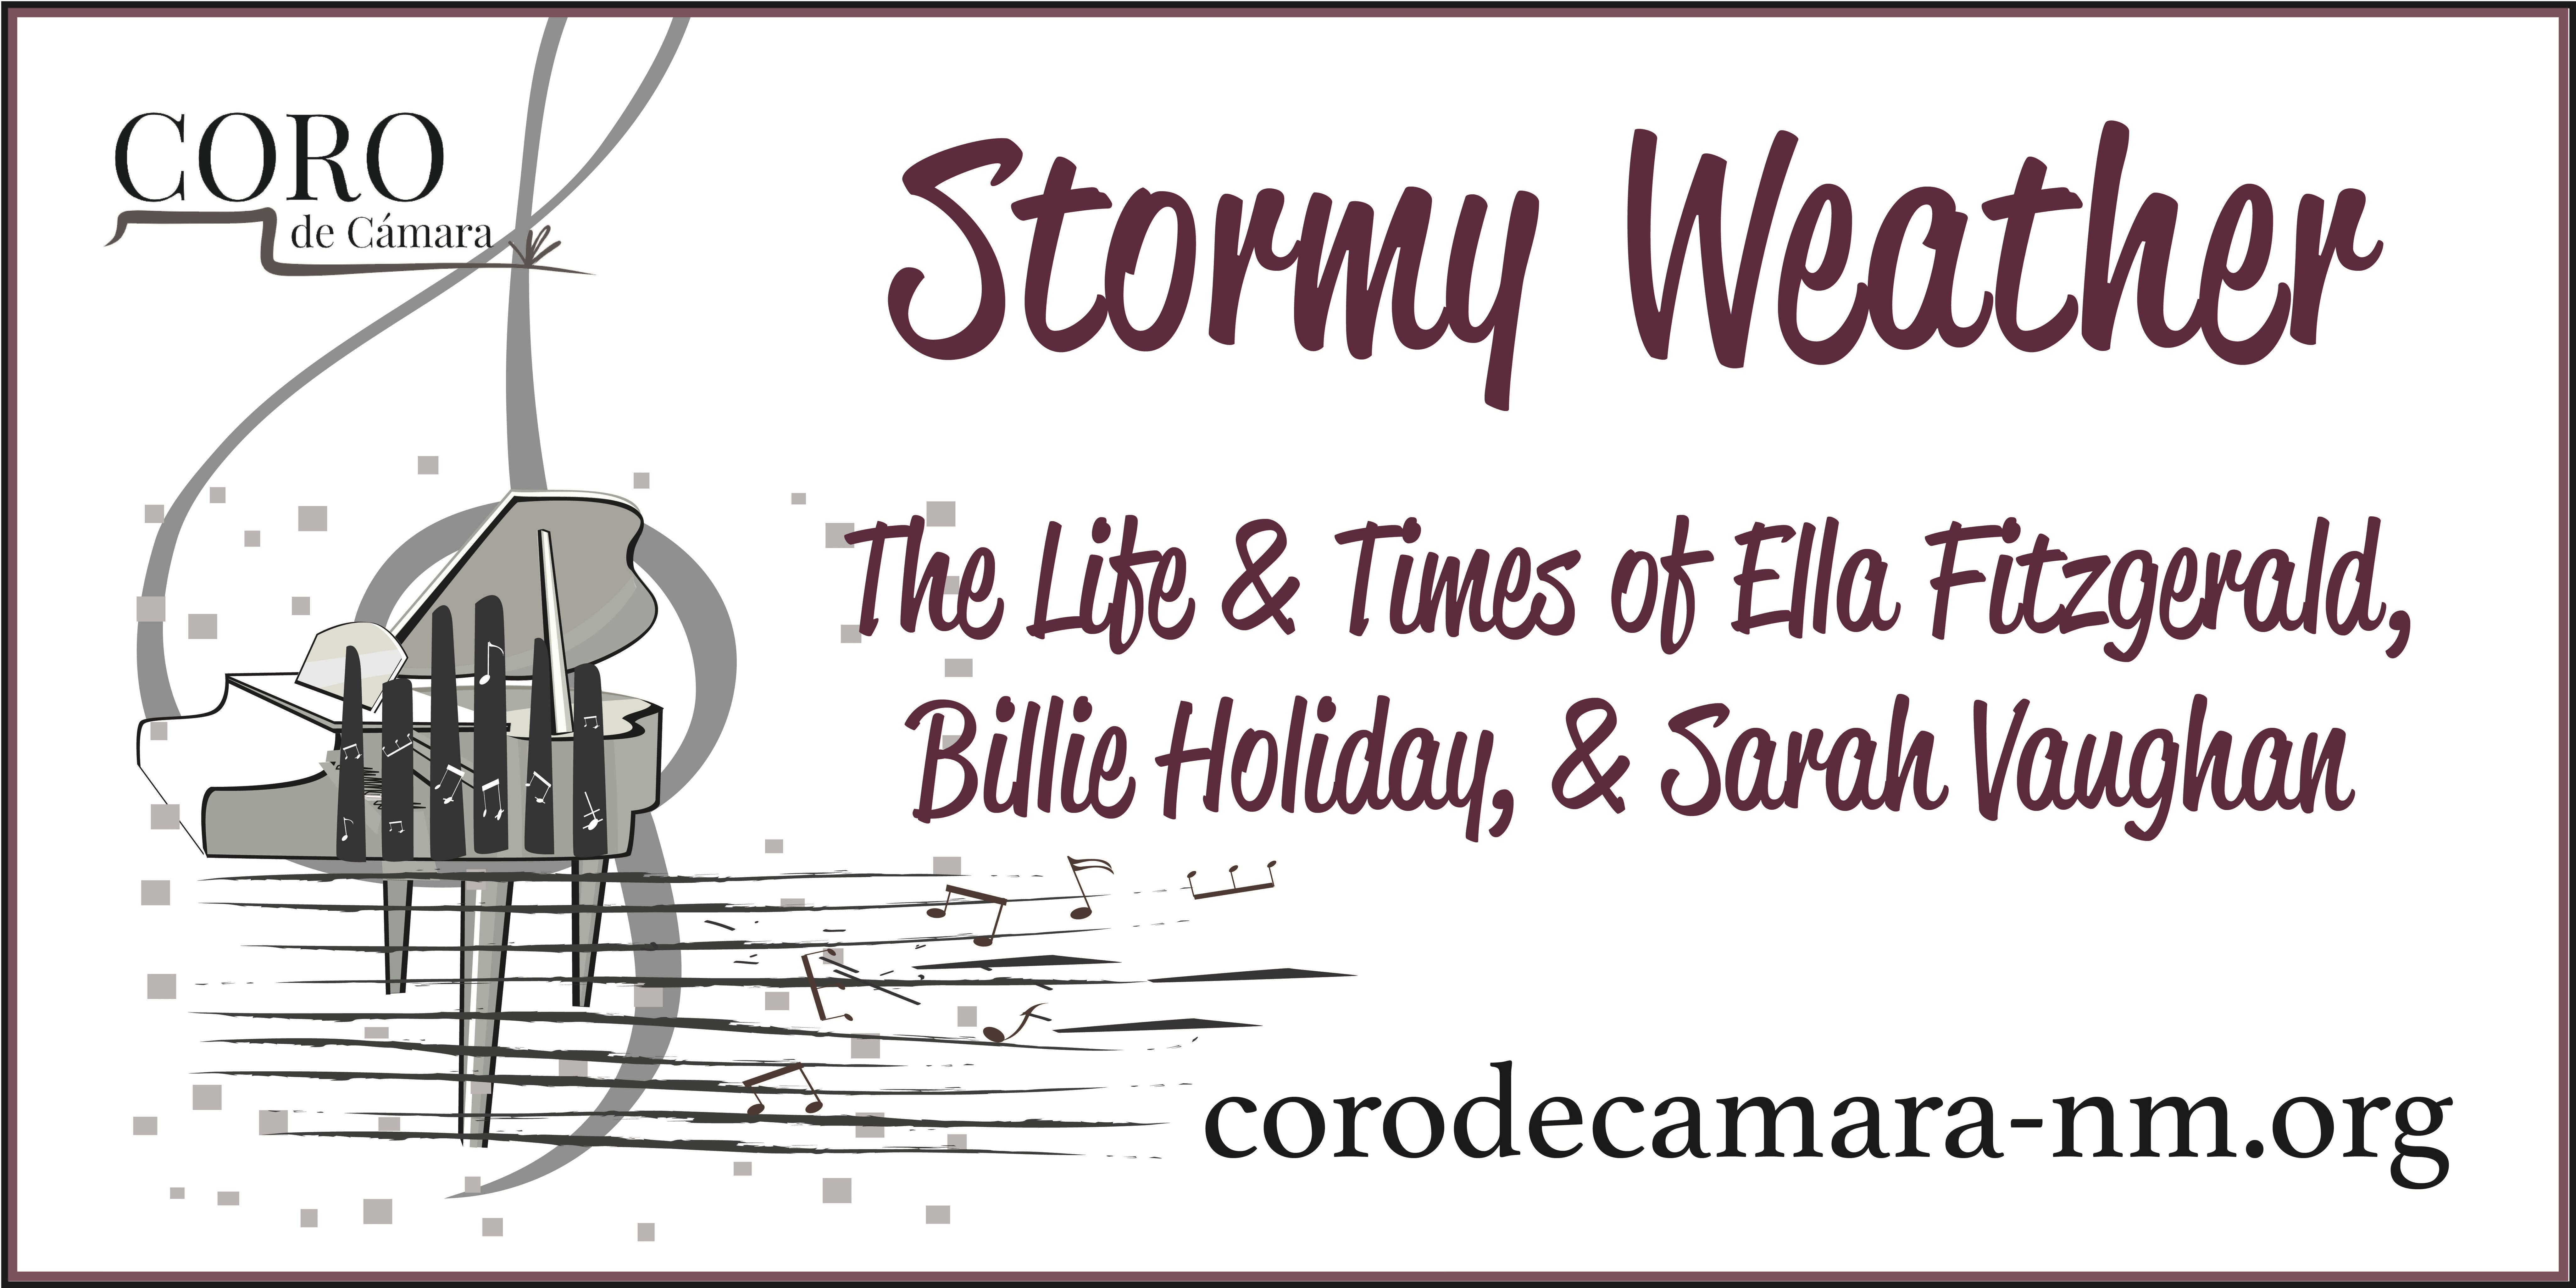 Stormy Weather: The Life & Times of Ella Fitzgerald, Billie Holiday & Sarah Vaughan